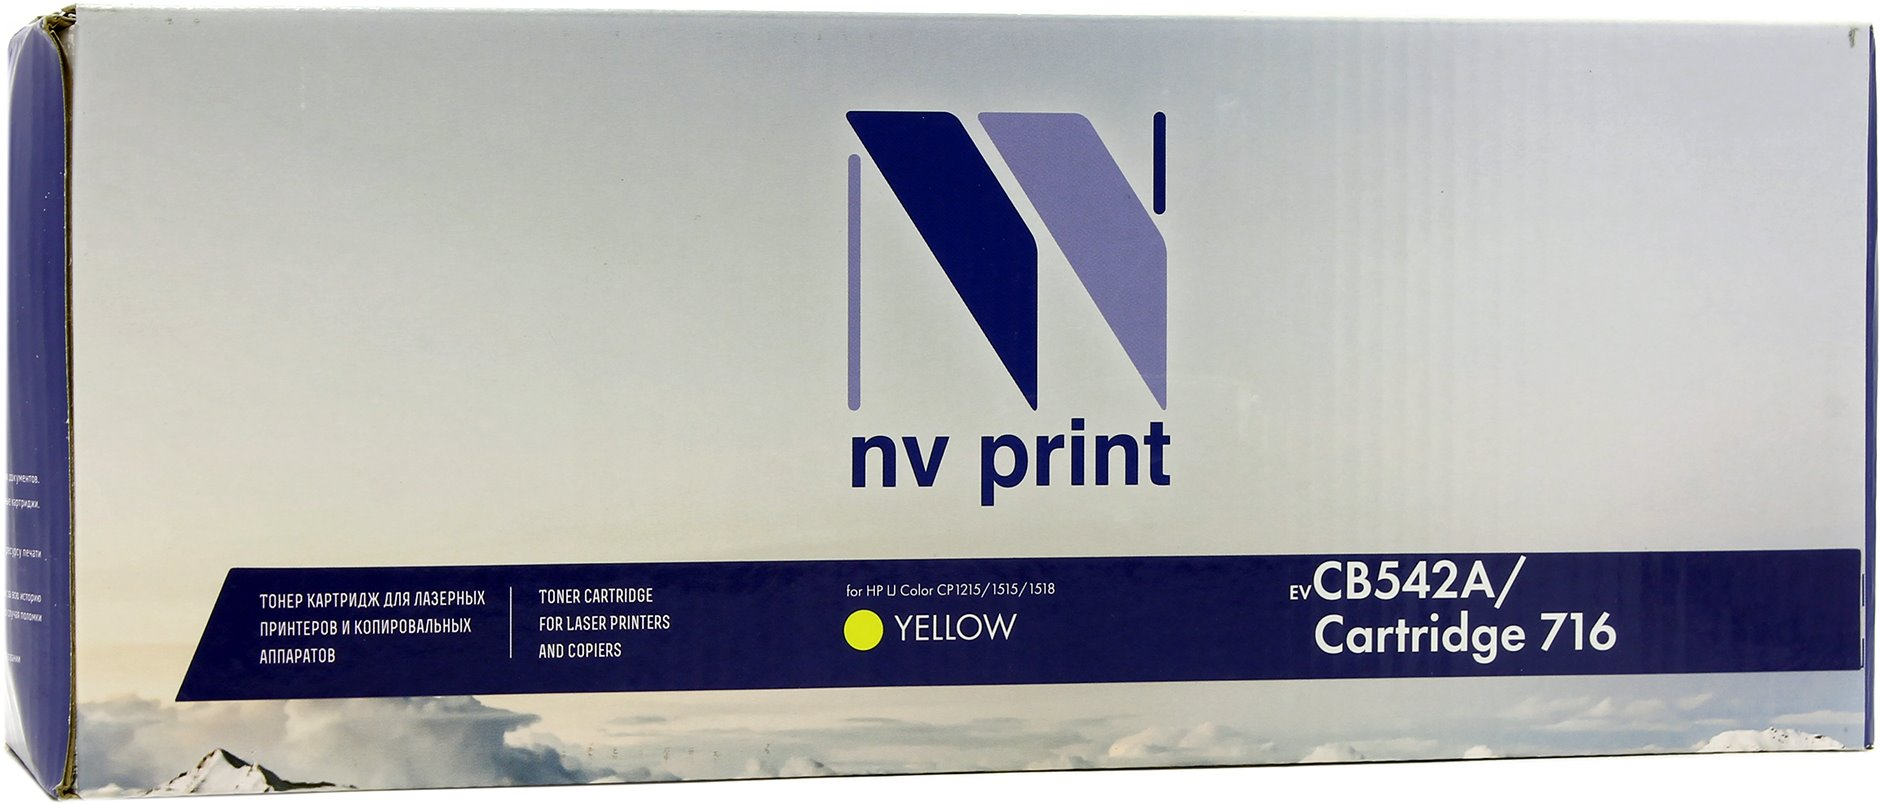 картинка Картридж NV-Print для HP Color LaserJet CP1215/1515/ CM1312 Yellow, CB542A